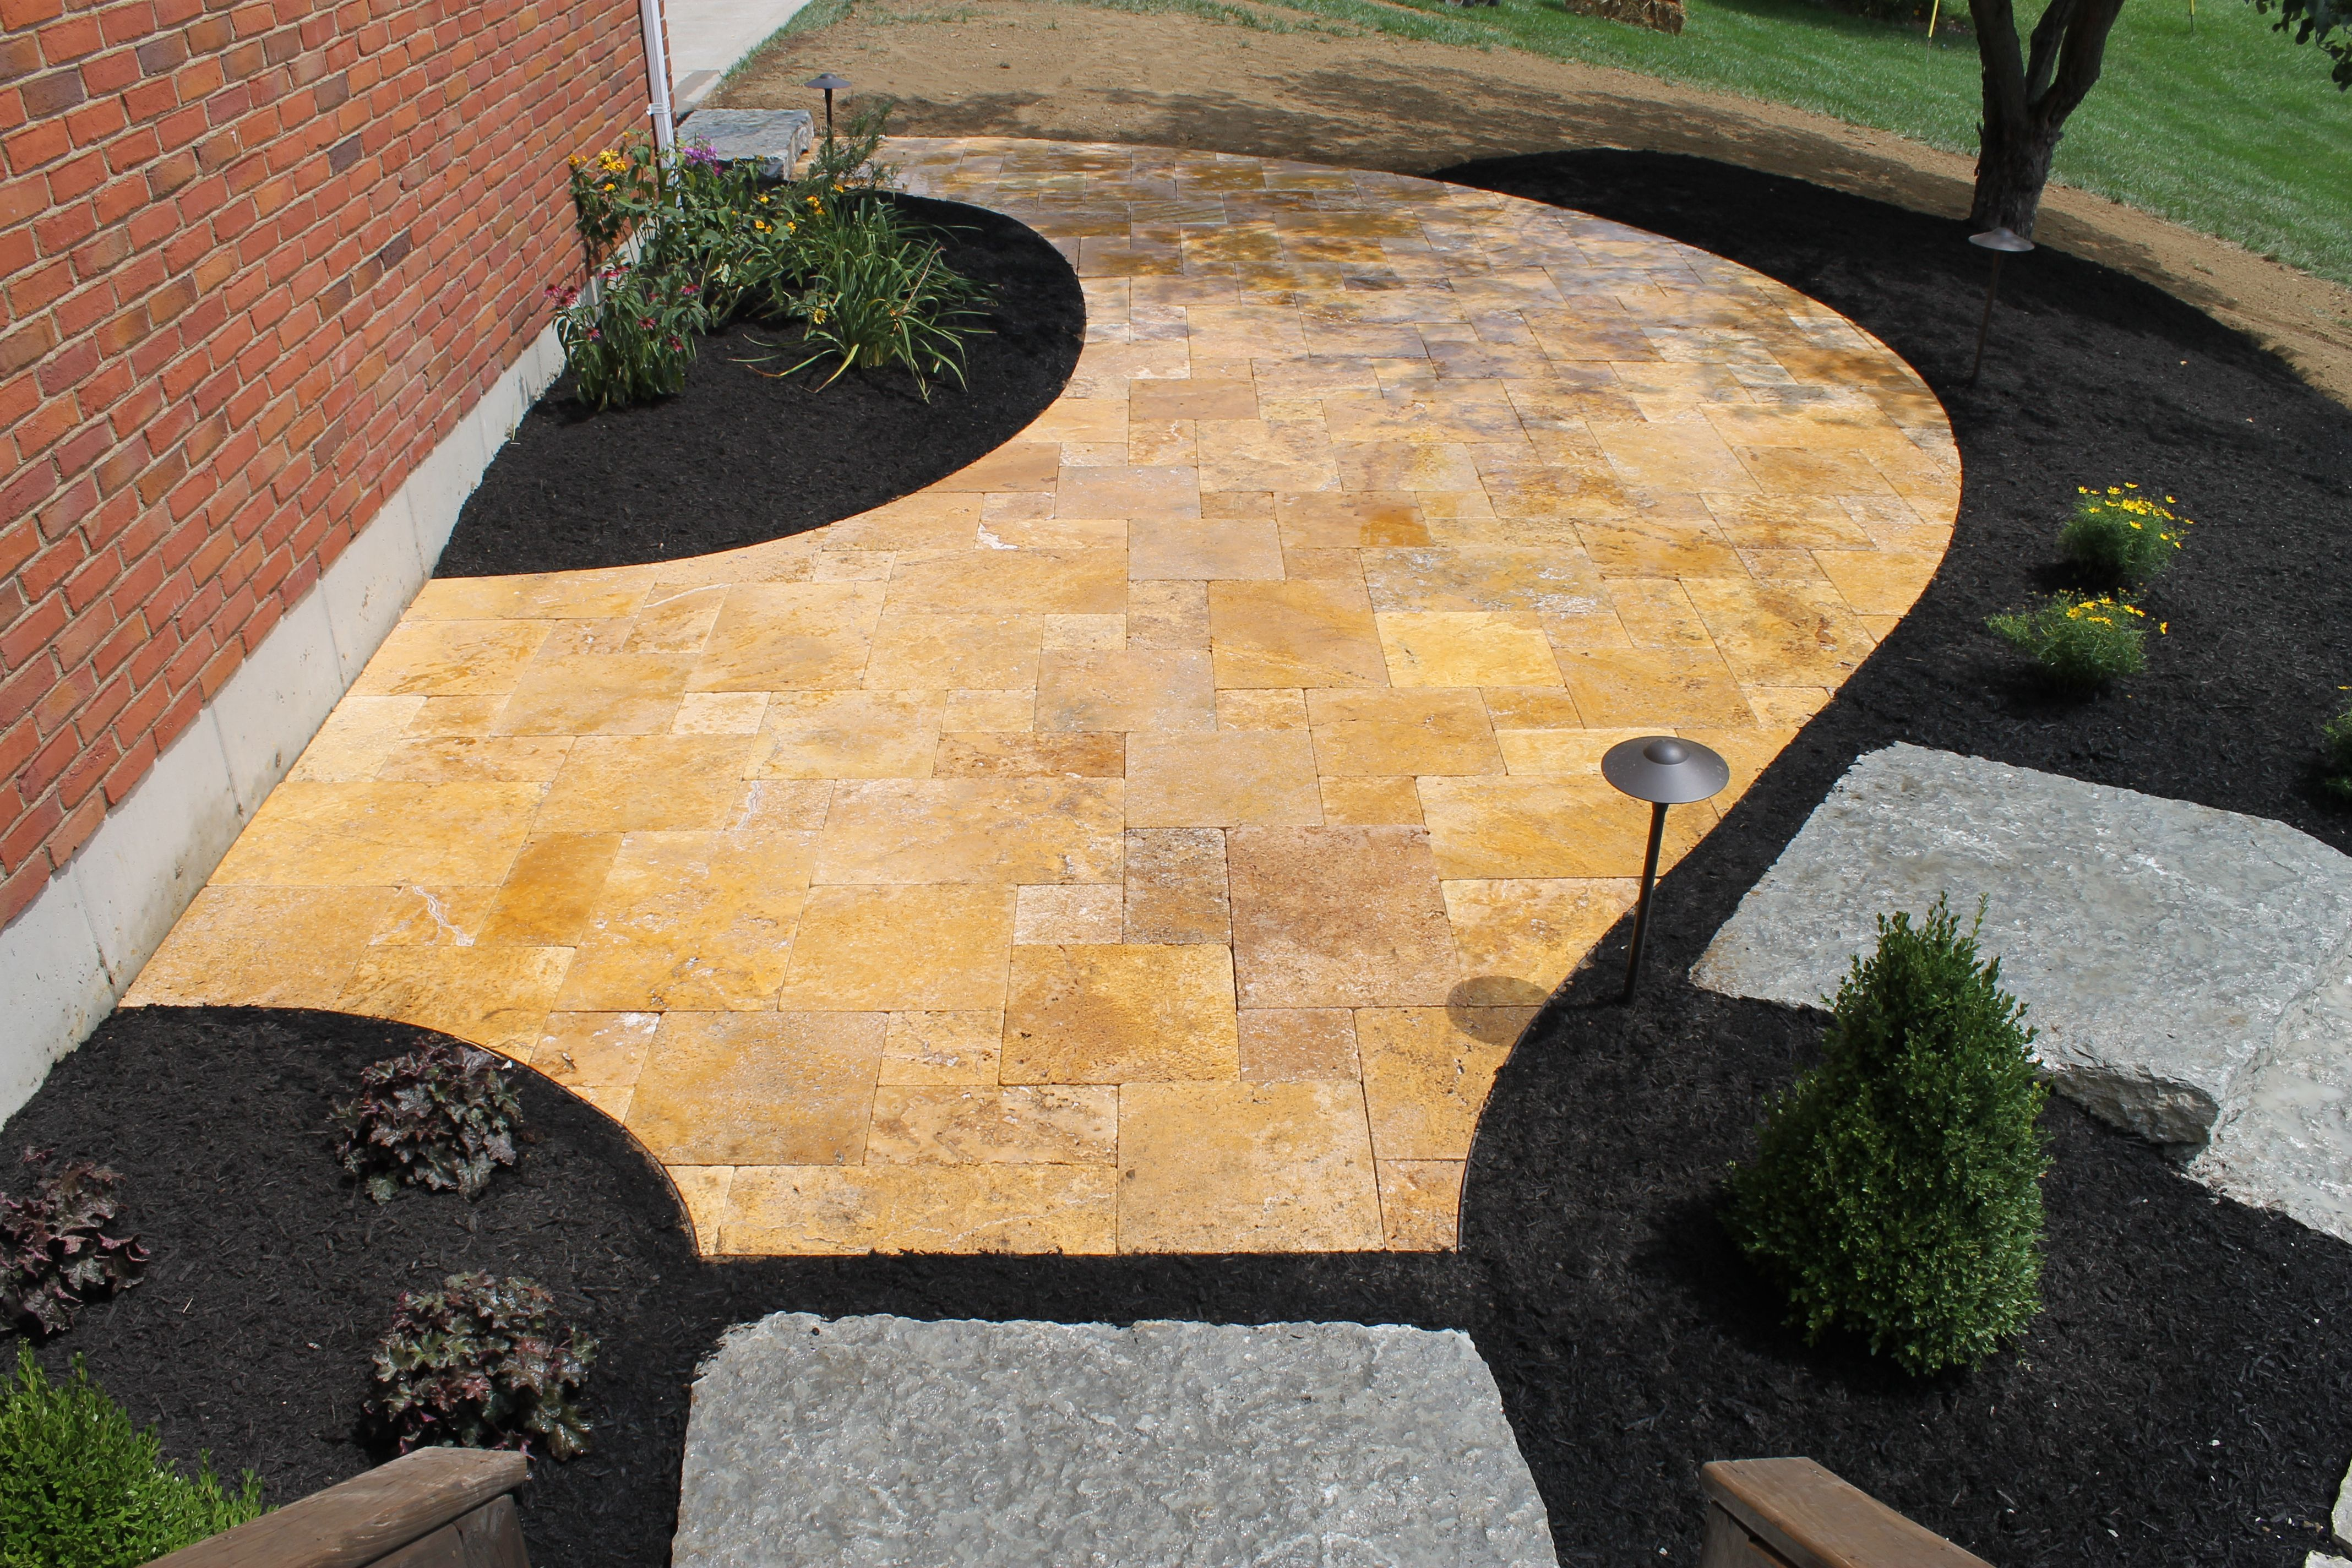 Gold Travertine Patio (With images) | Patio stones ... on Travertine Patio Ideas id=34790